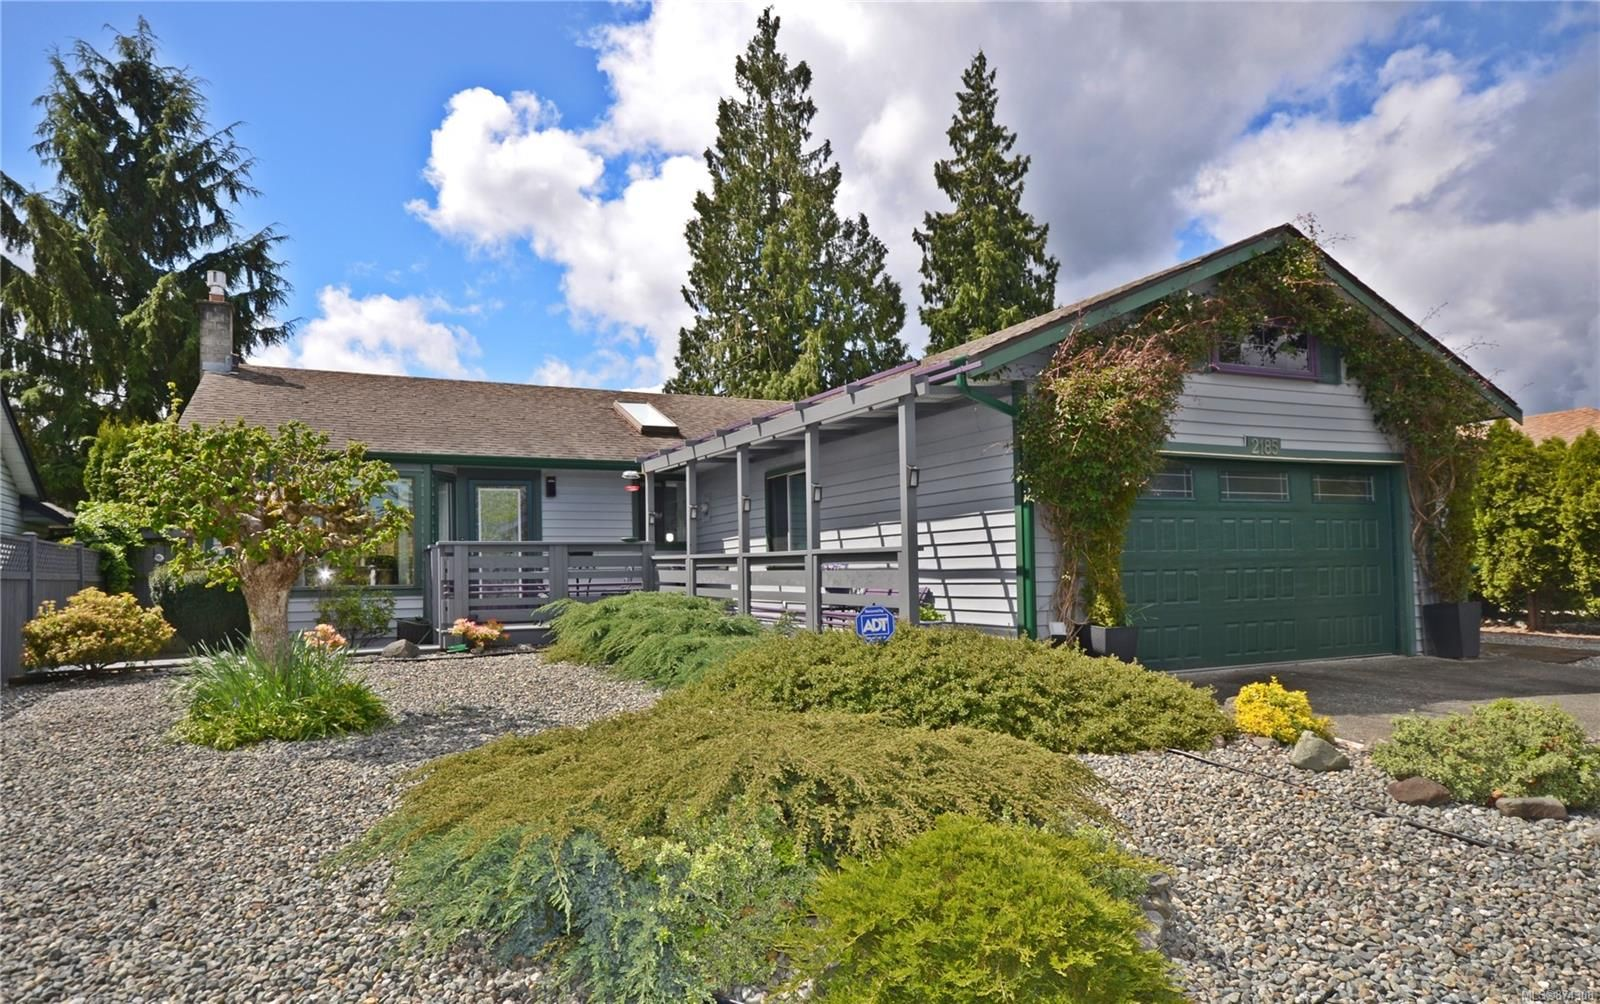 Main Photo: 2185 Michigan Way in : Na South Jingle Pot House for sale (Nanaimo)  : MLS®# 874308